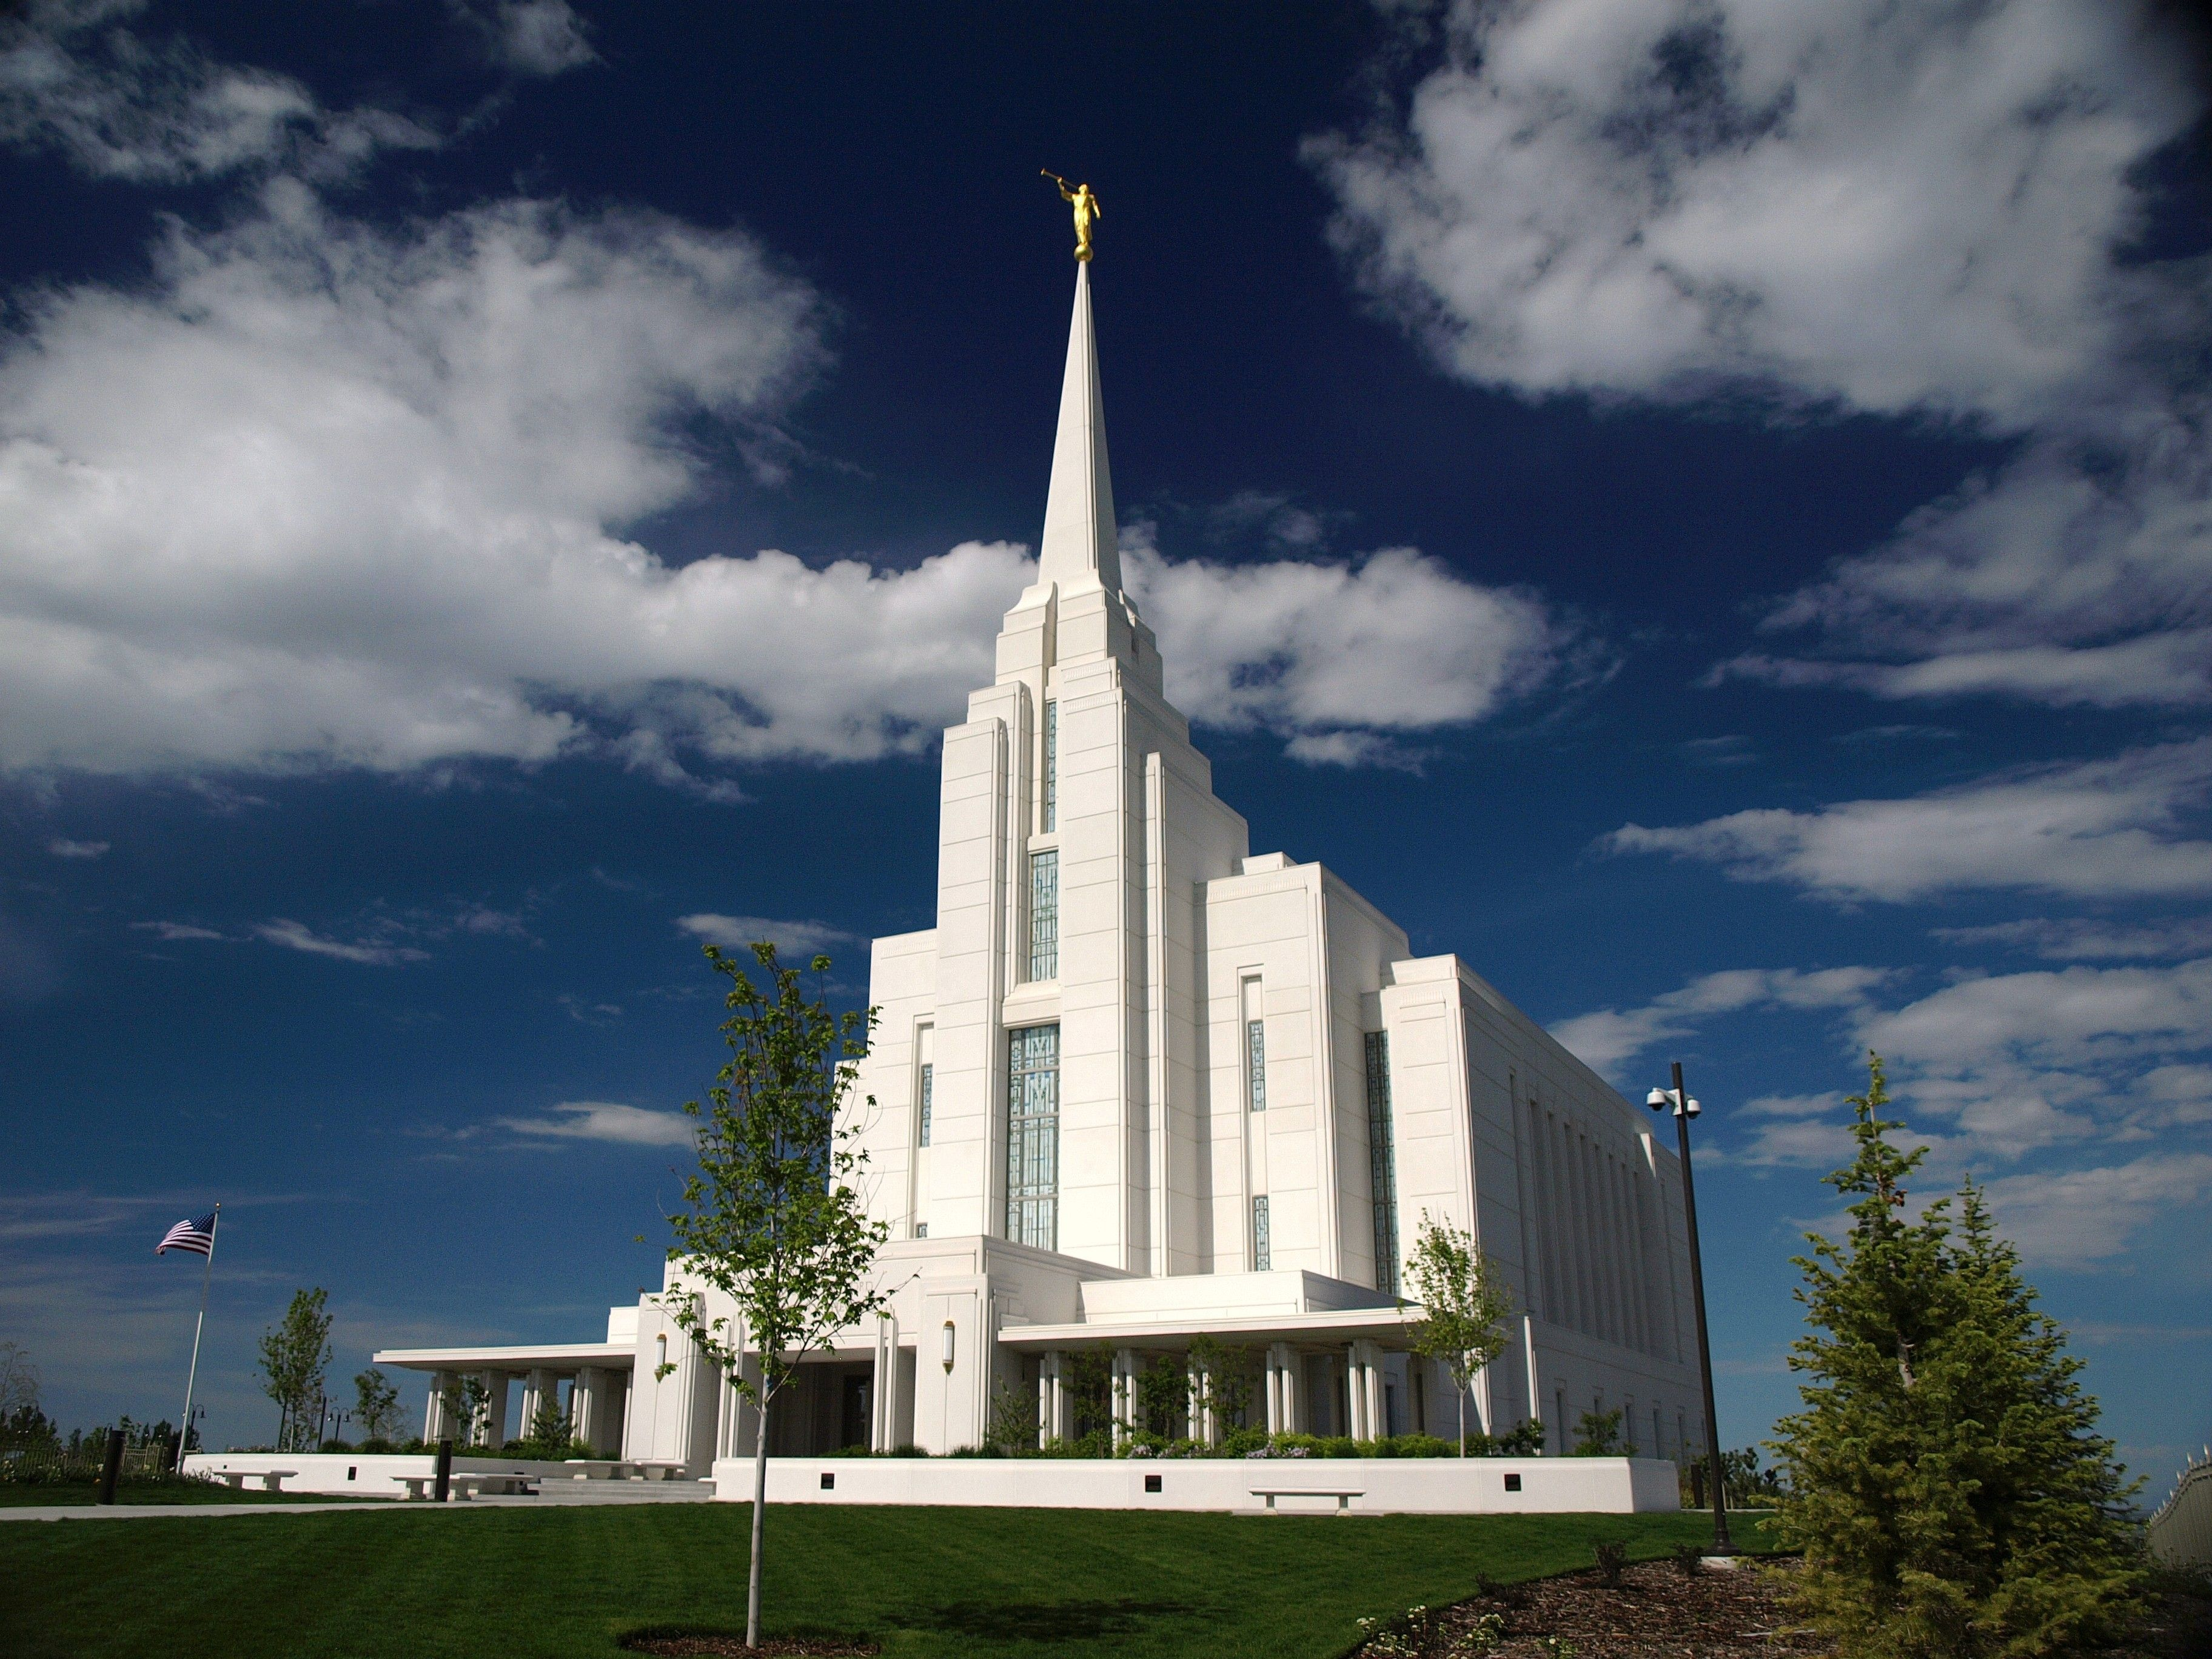 The Rexburg Idaho Temple on a partly cloudy day.